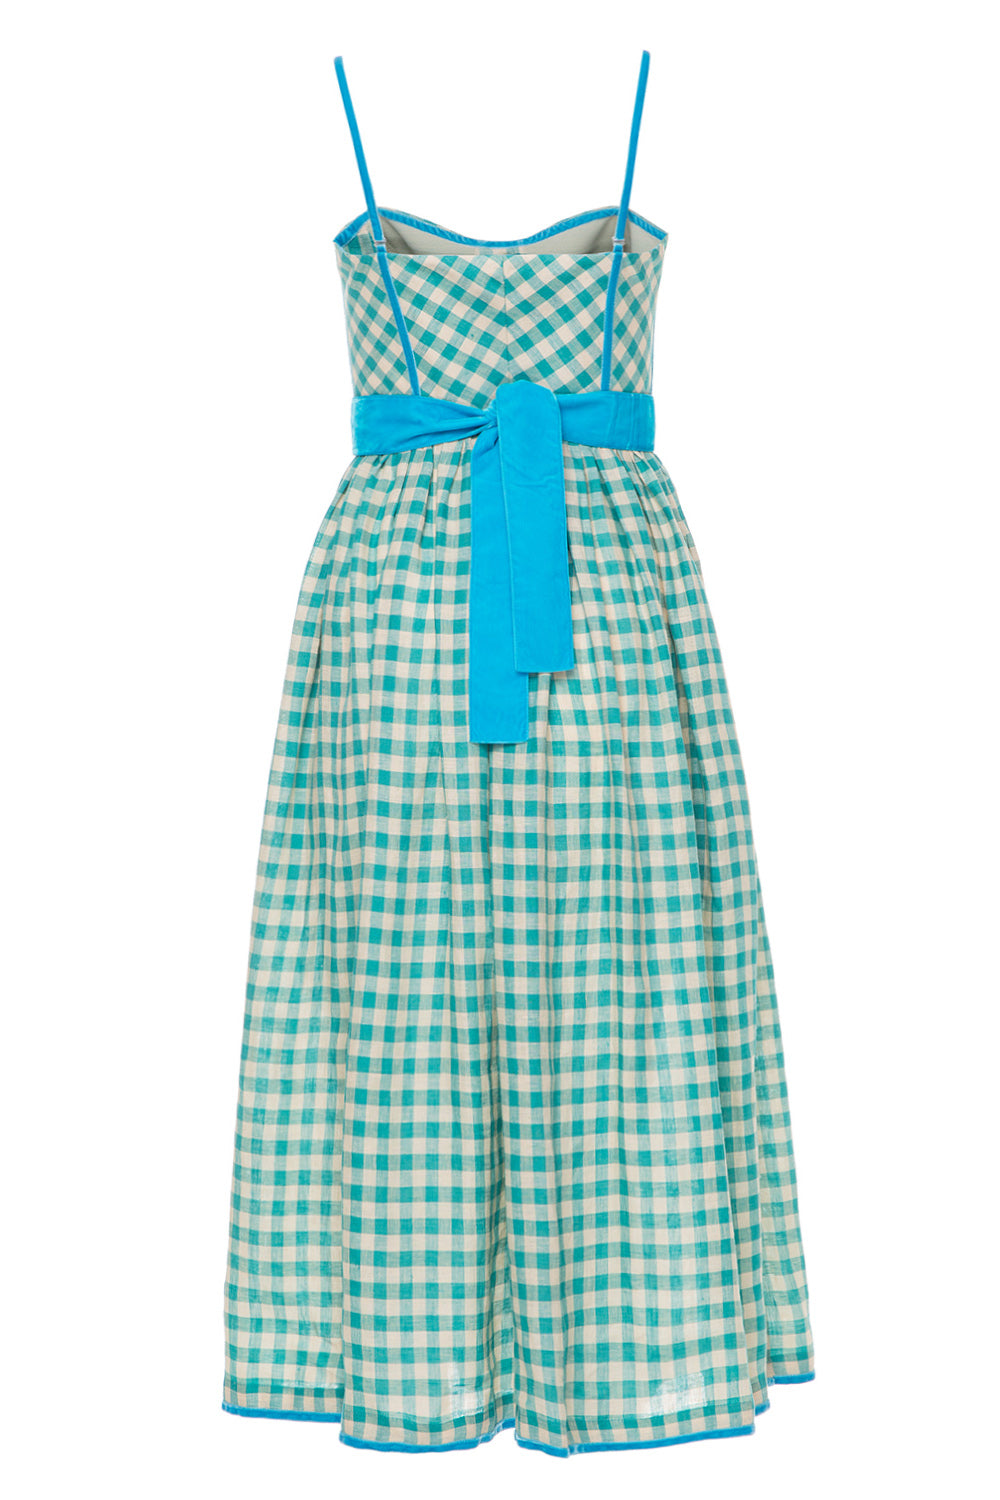 Mint Candy Checked dress